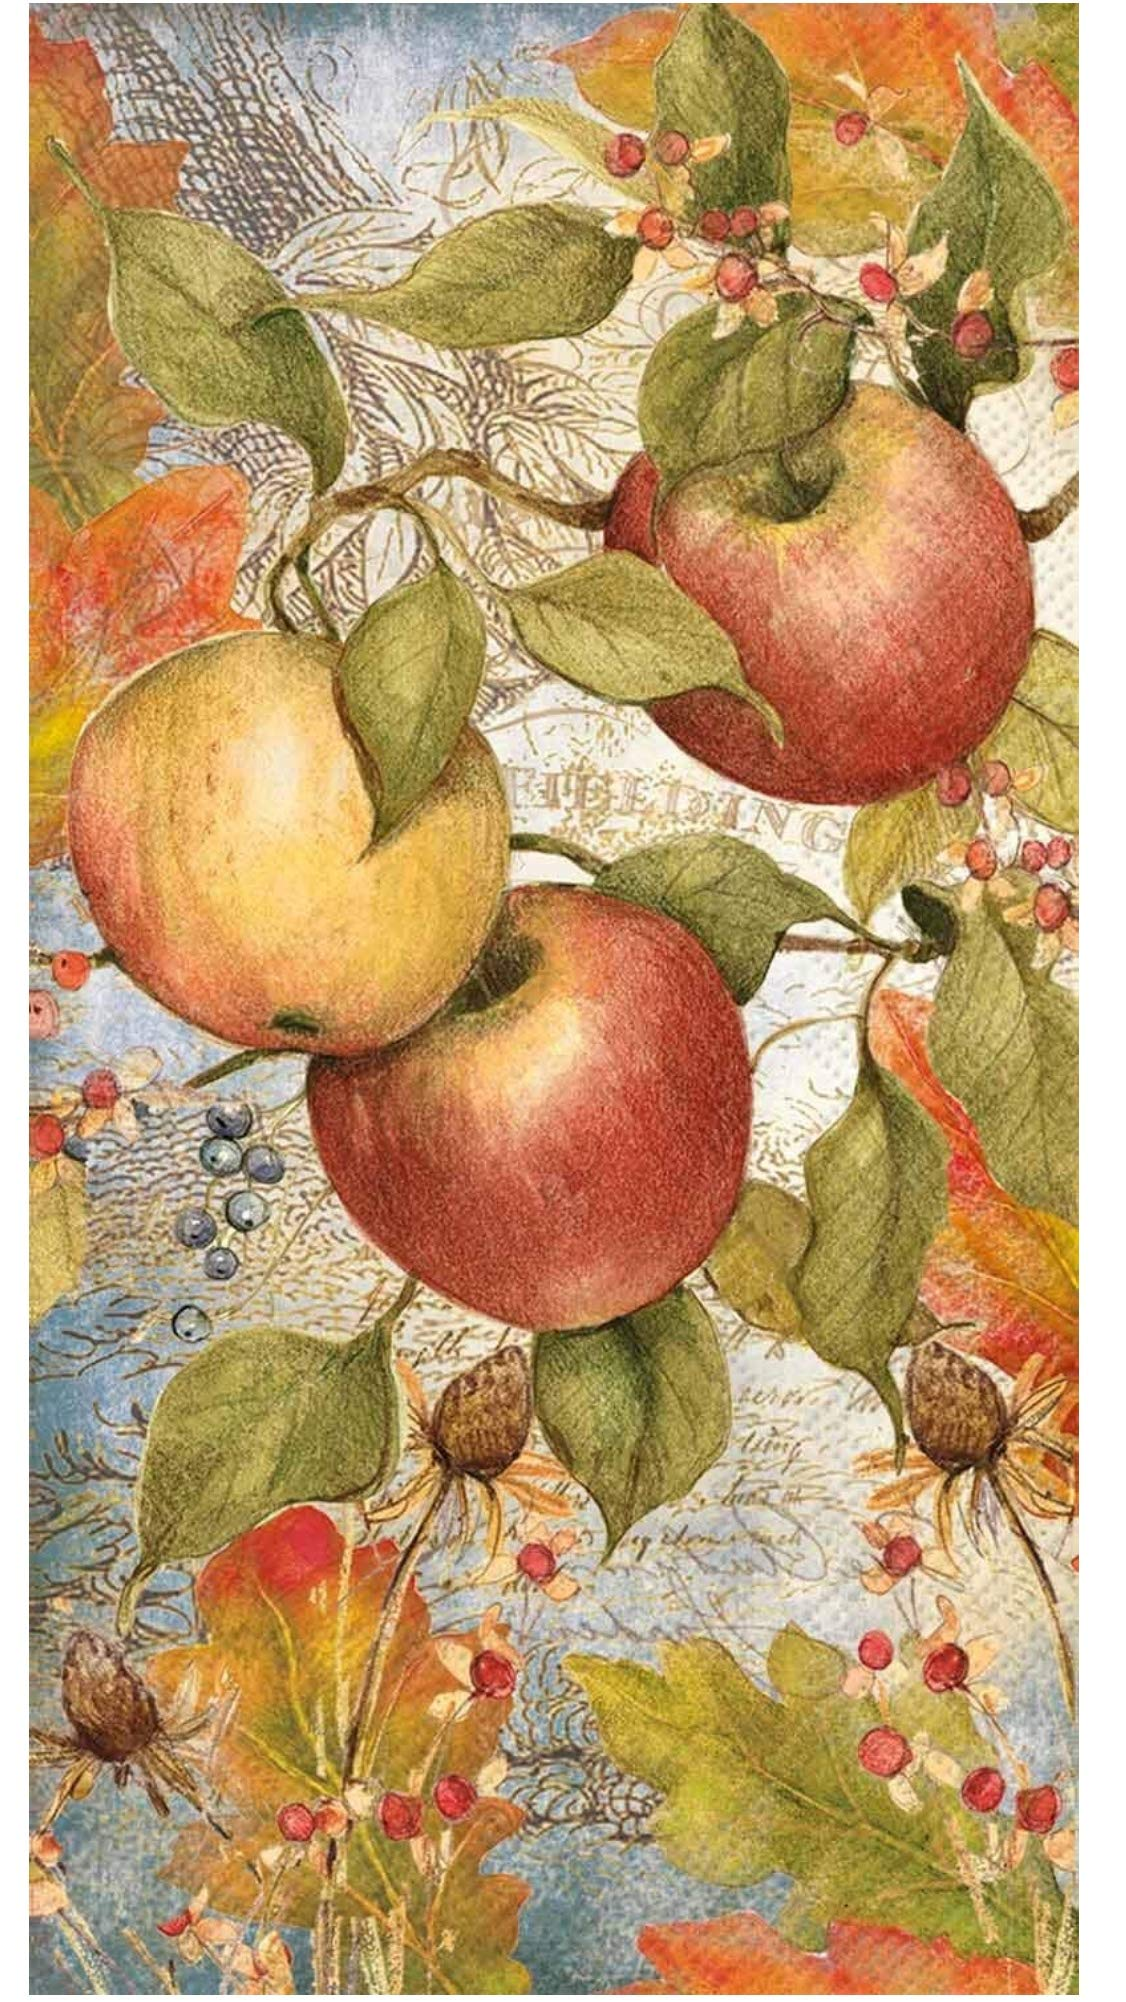 Mesafina Apple Guest Towels Buffet Paper Napkins, 32 ct by Mesafina